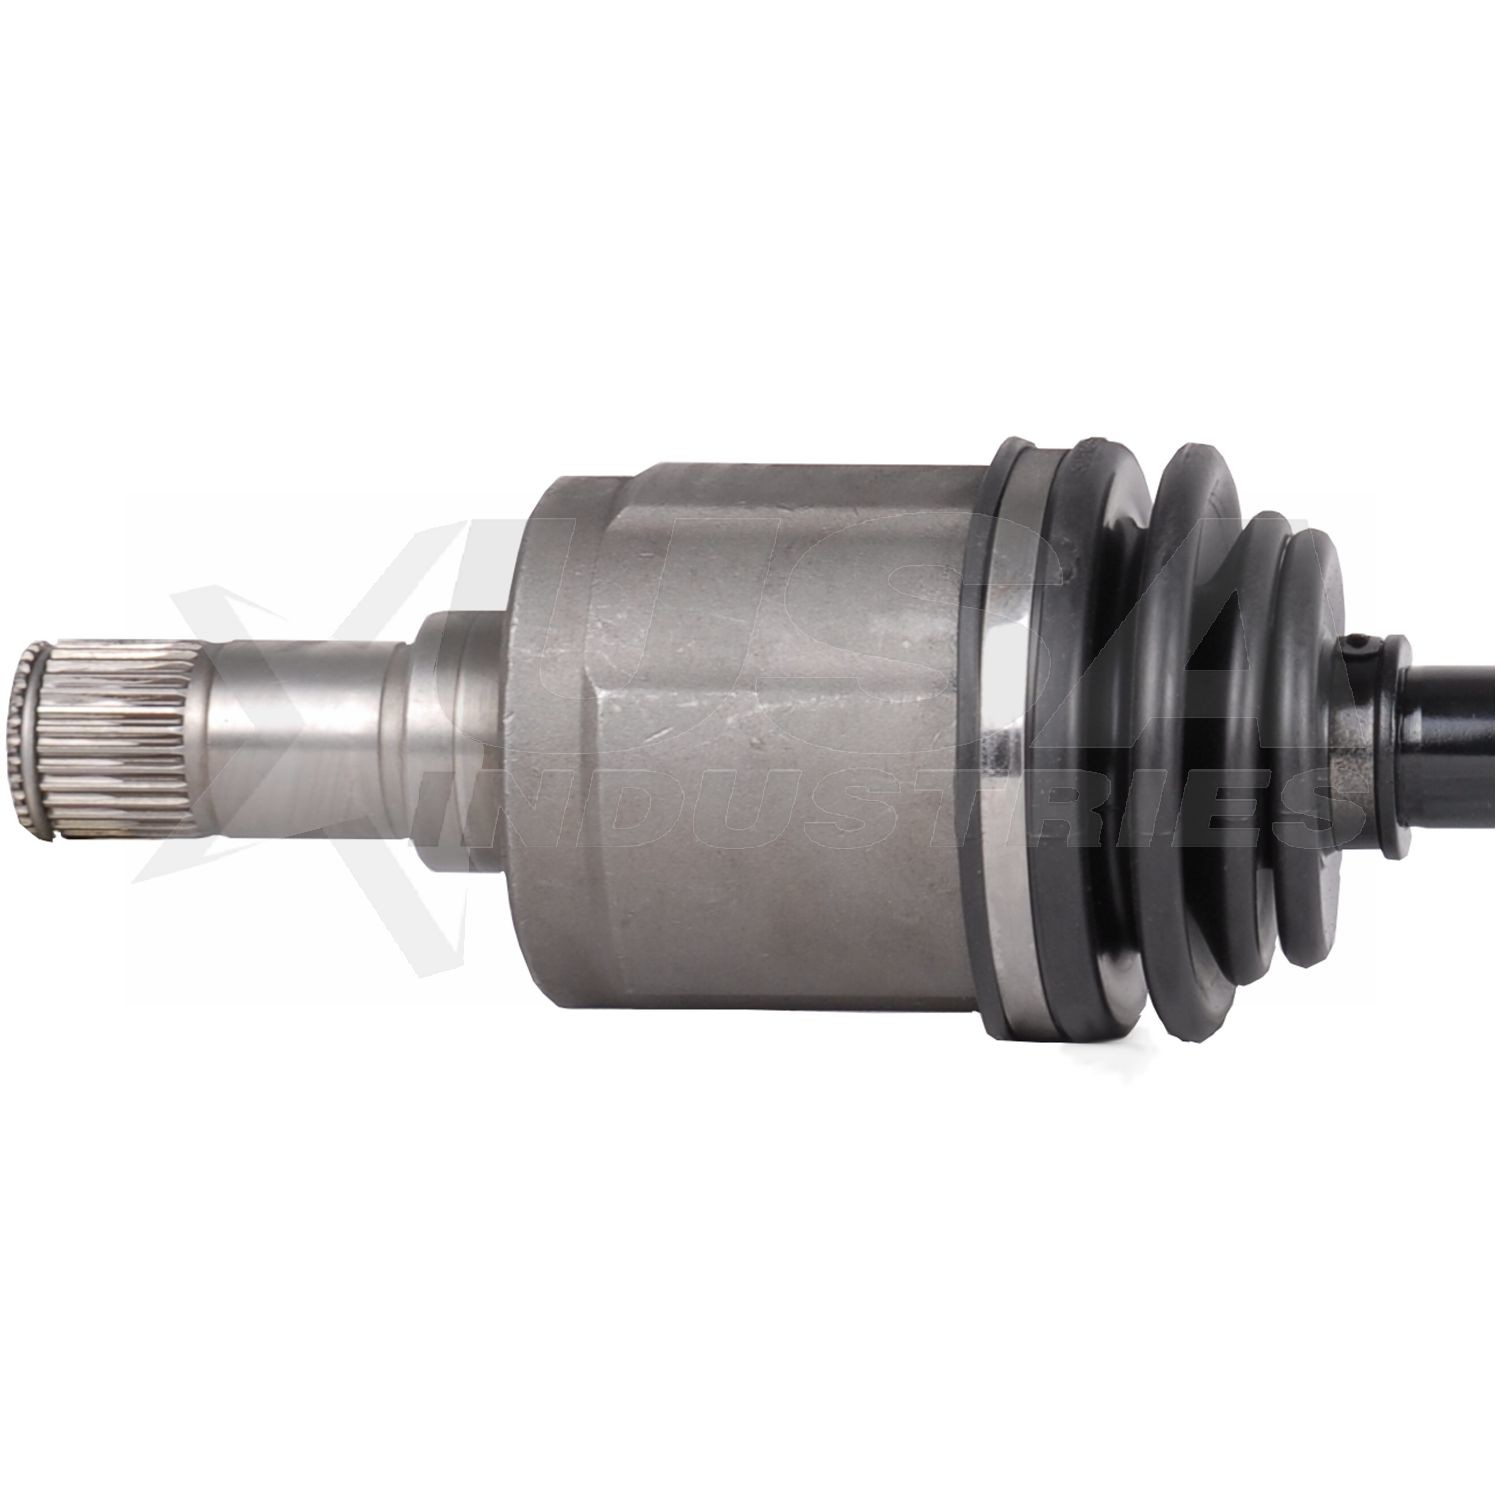 USA INDUSTRIES INC. - Reman CV Axle Assembly - UIE AX-2093